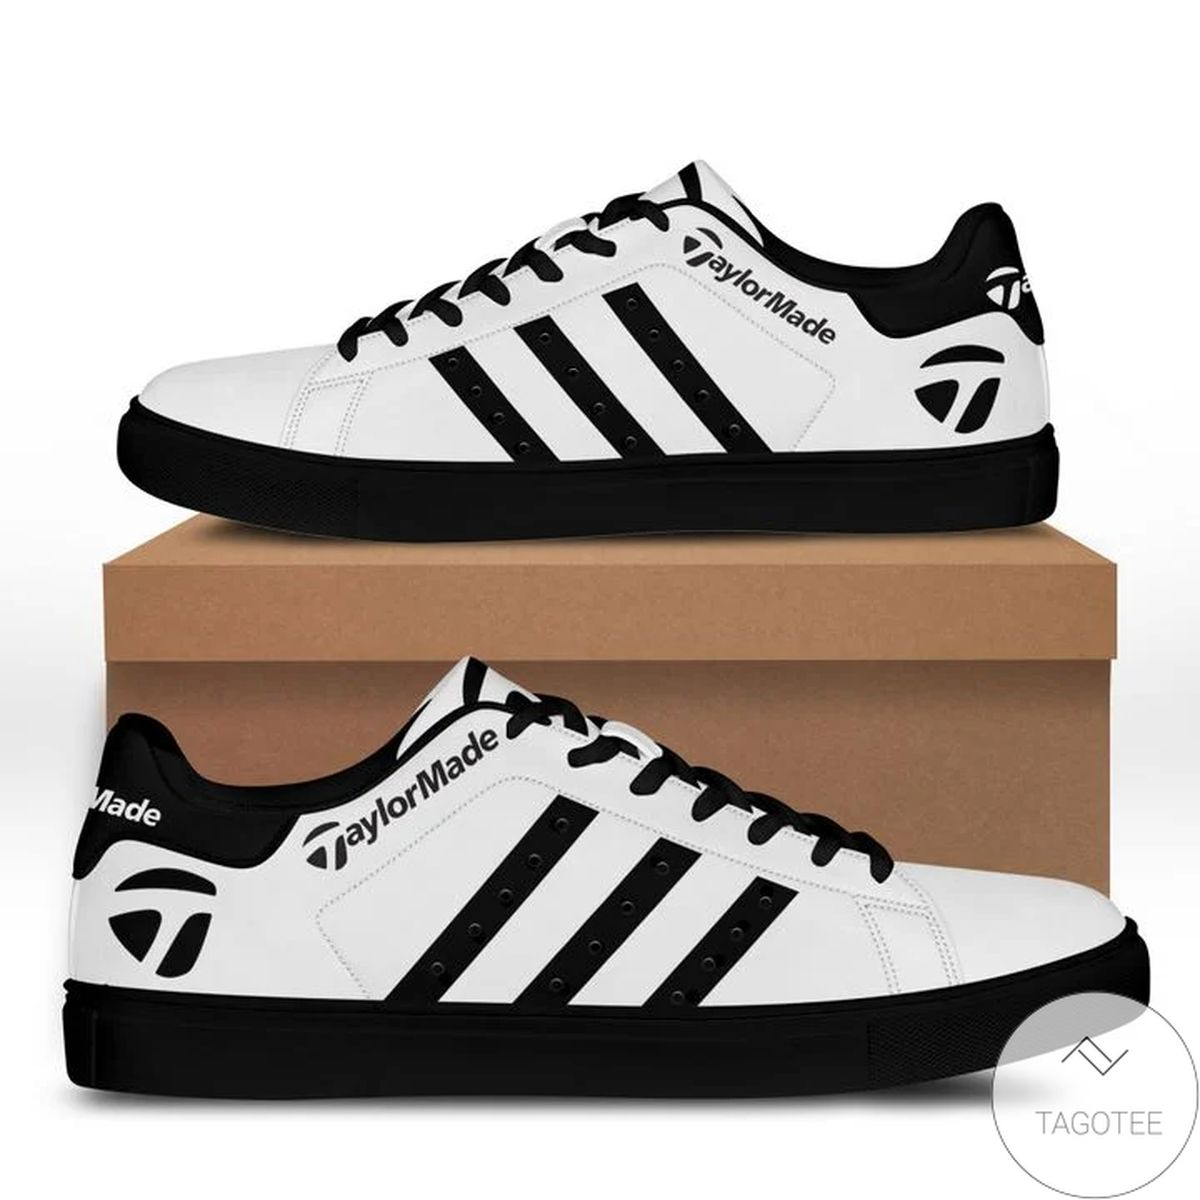 Taylor Made Stan Smith Shoes